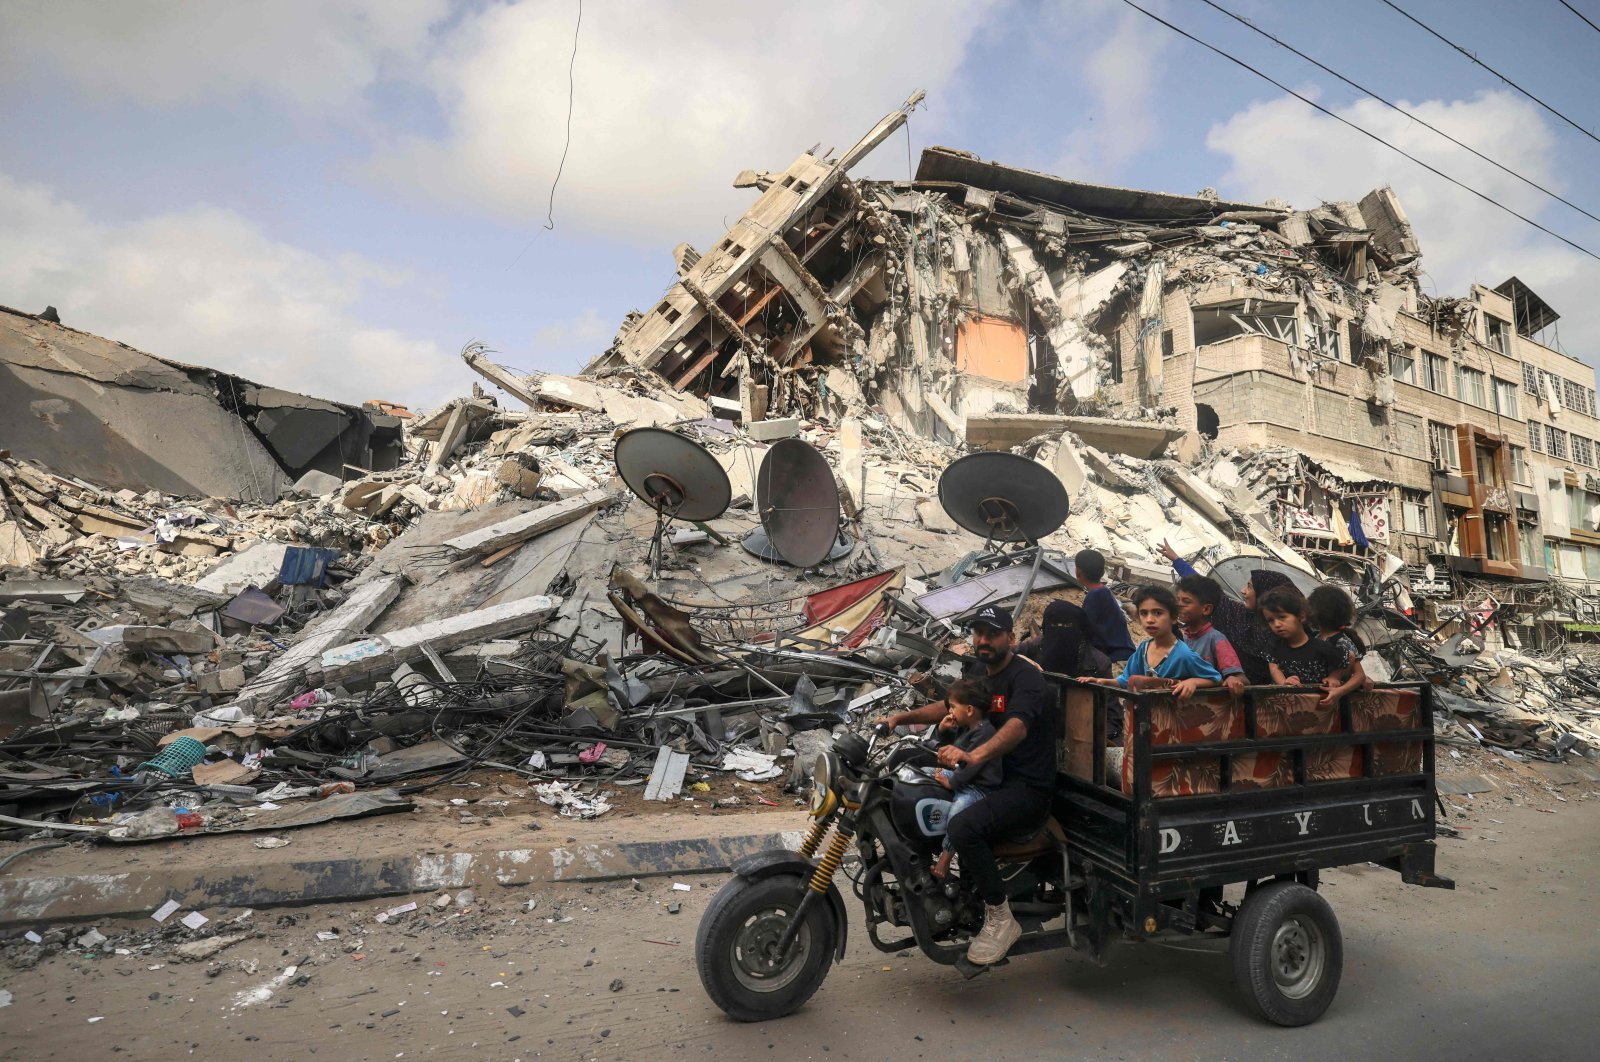 A Palestinian man transports children in a tricycle past the Al-Shuruq building, destroyed by an Israeli airstrike, in Gaza City, the Gaza Strip, Palestine, May 21, 2021. (AFP Photo)